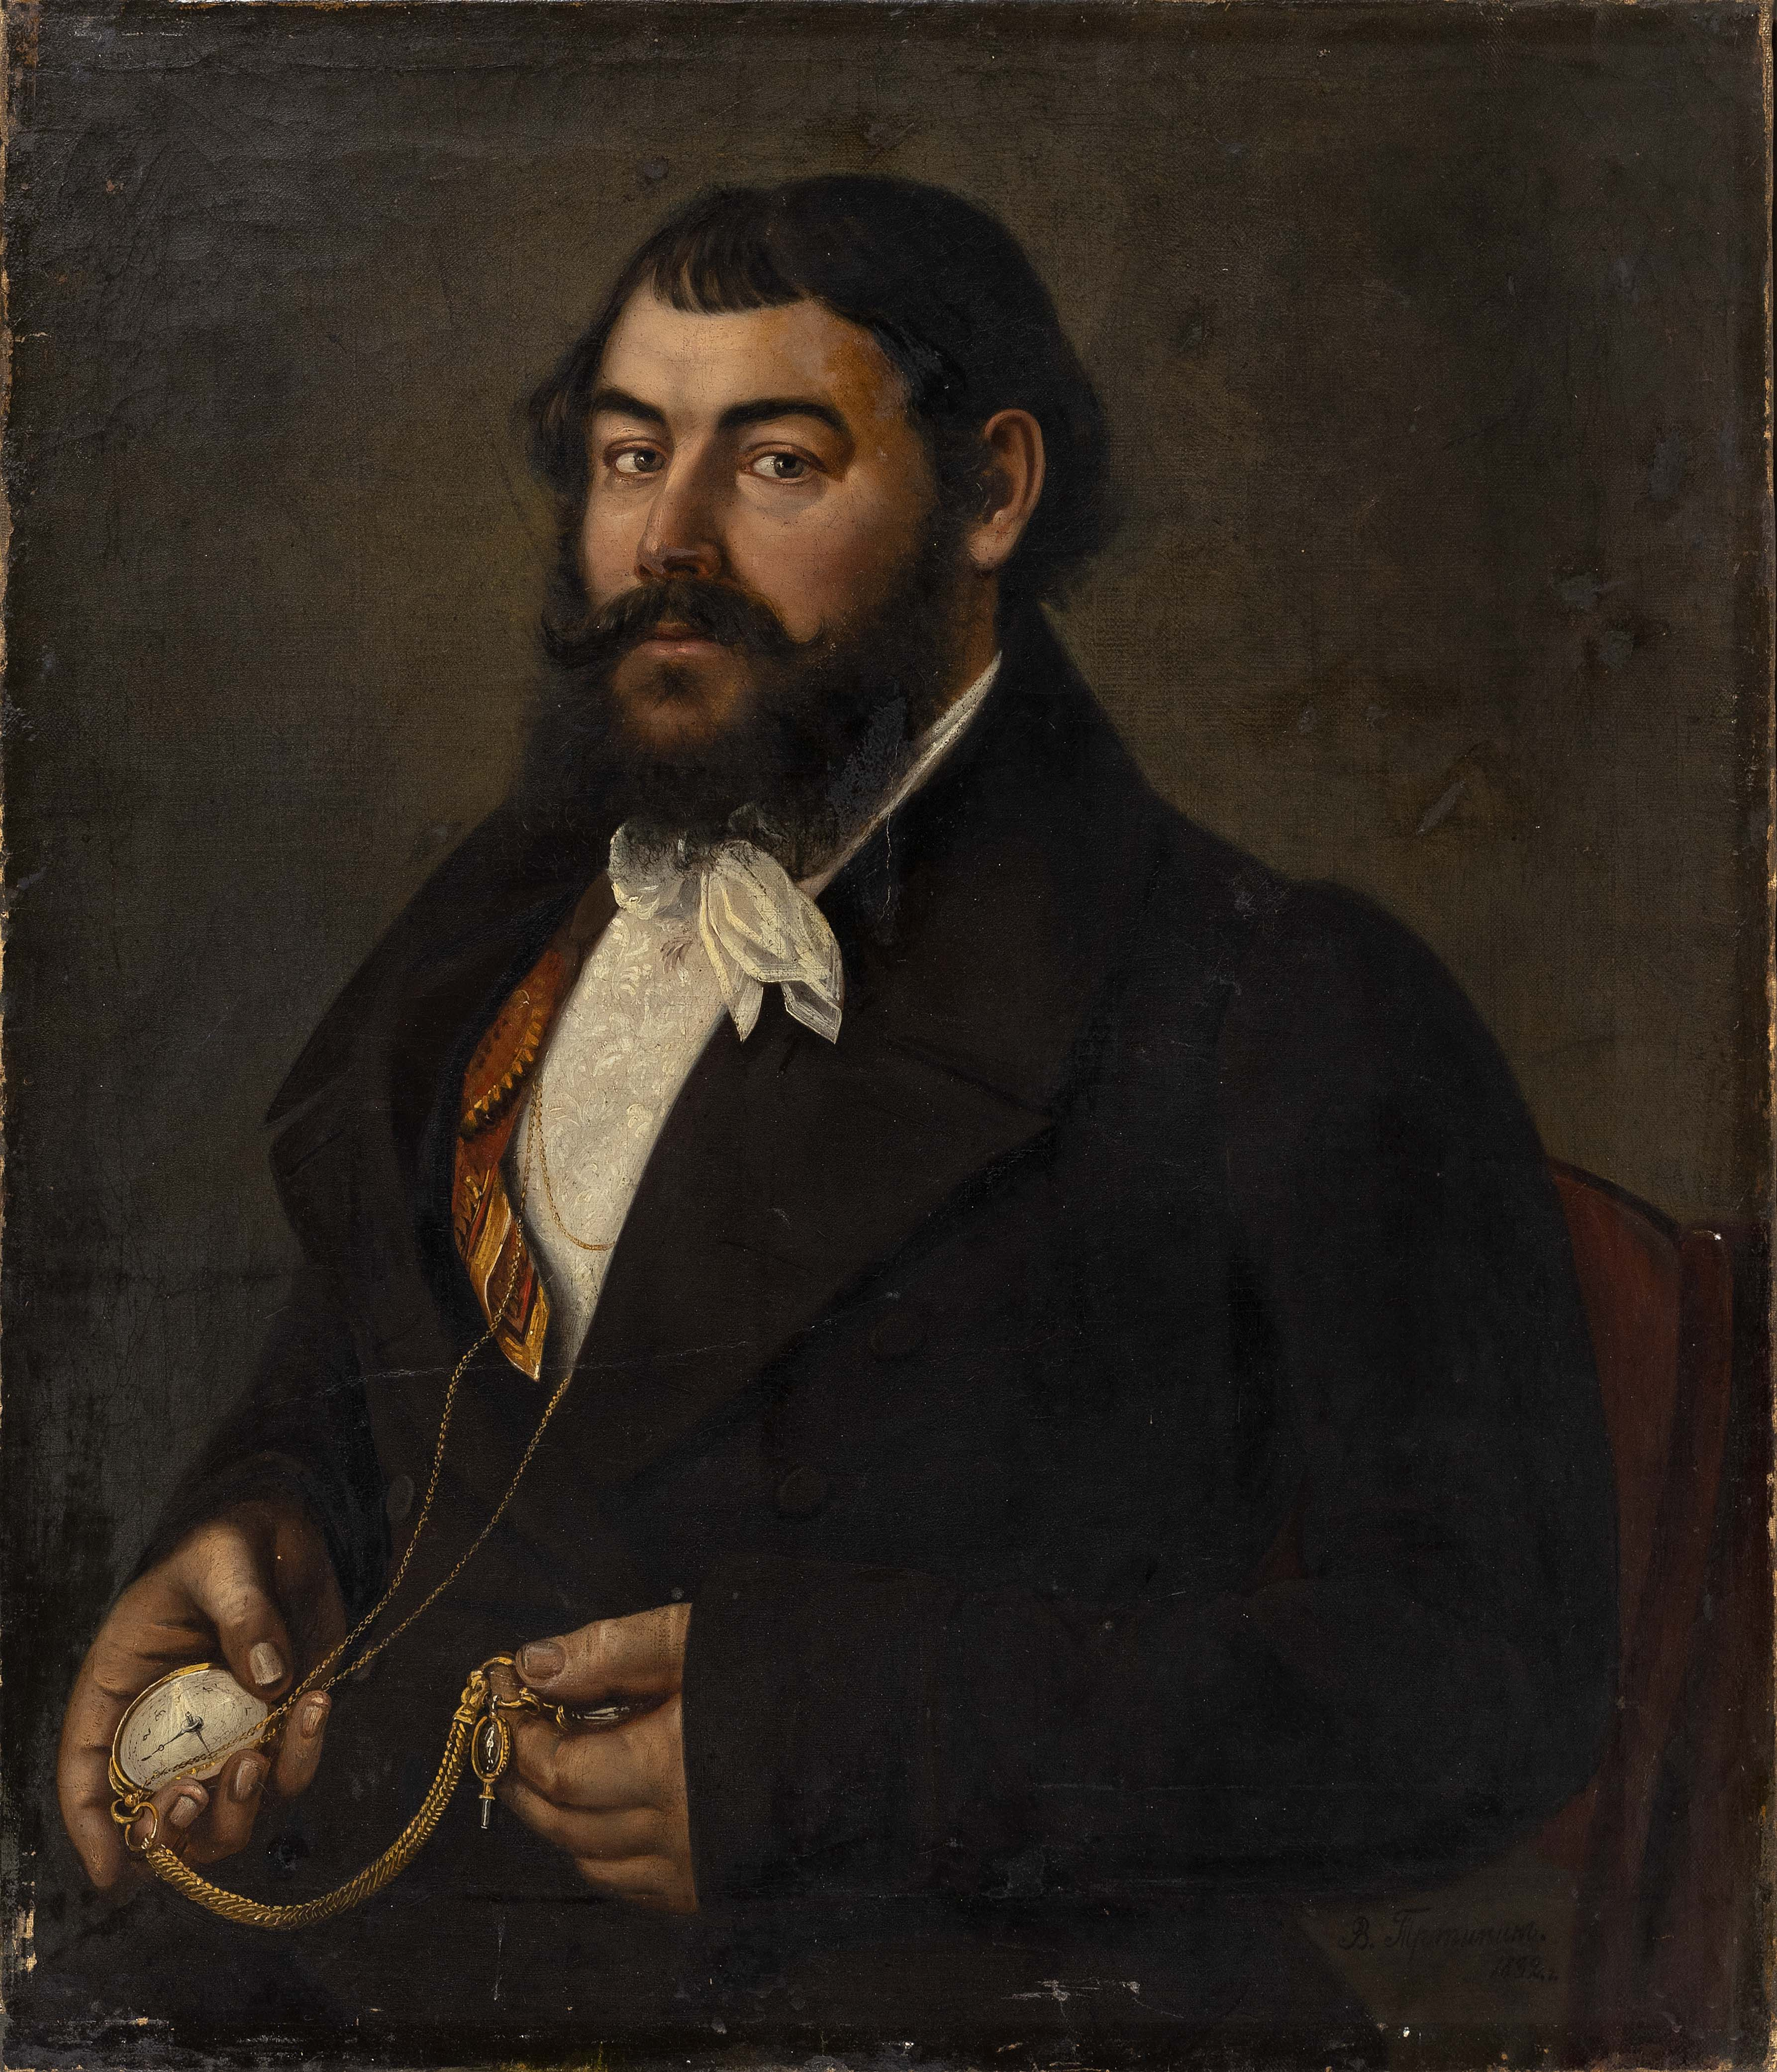 PORTRAIT OF A GERMAN MAN 19th Century Oil on canvas, 29